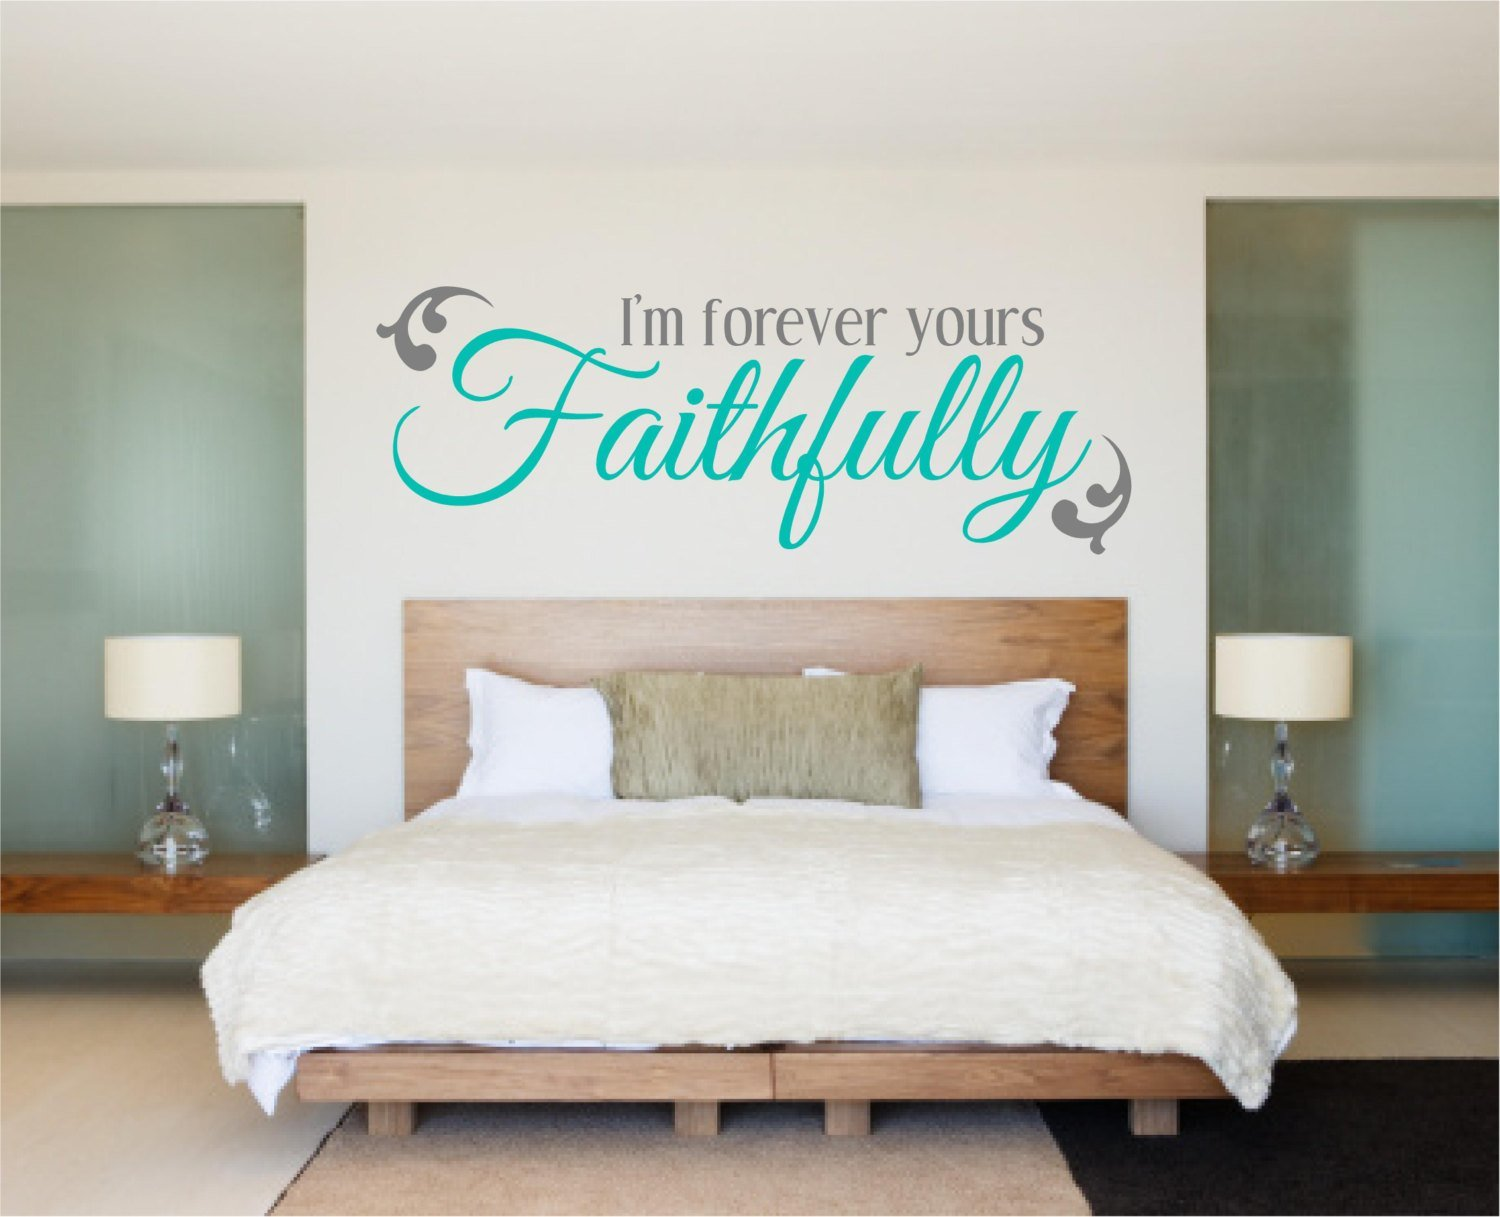 Best Bedroom Decal Bedroom Wall Decal Love Decal I M Forever With Pictures